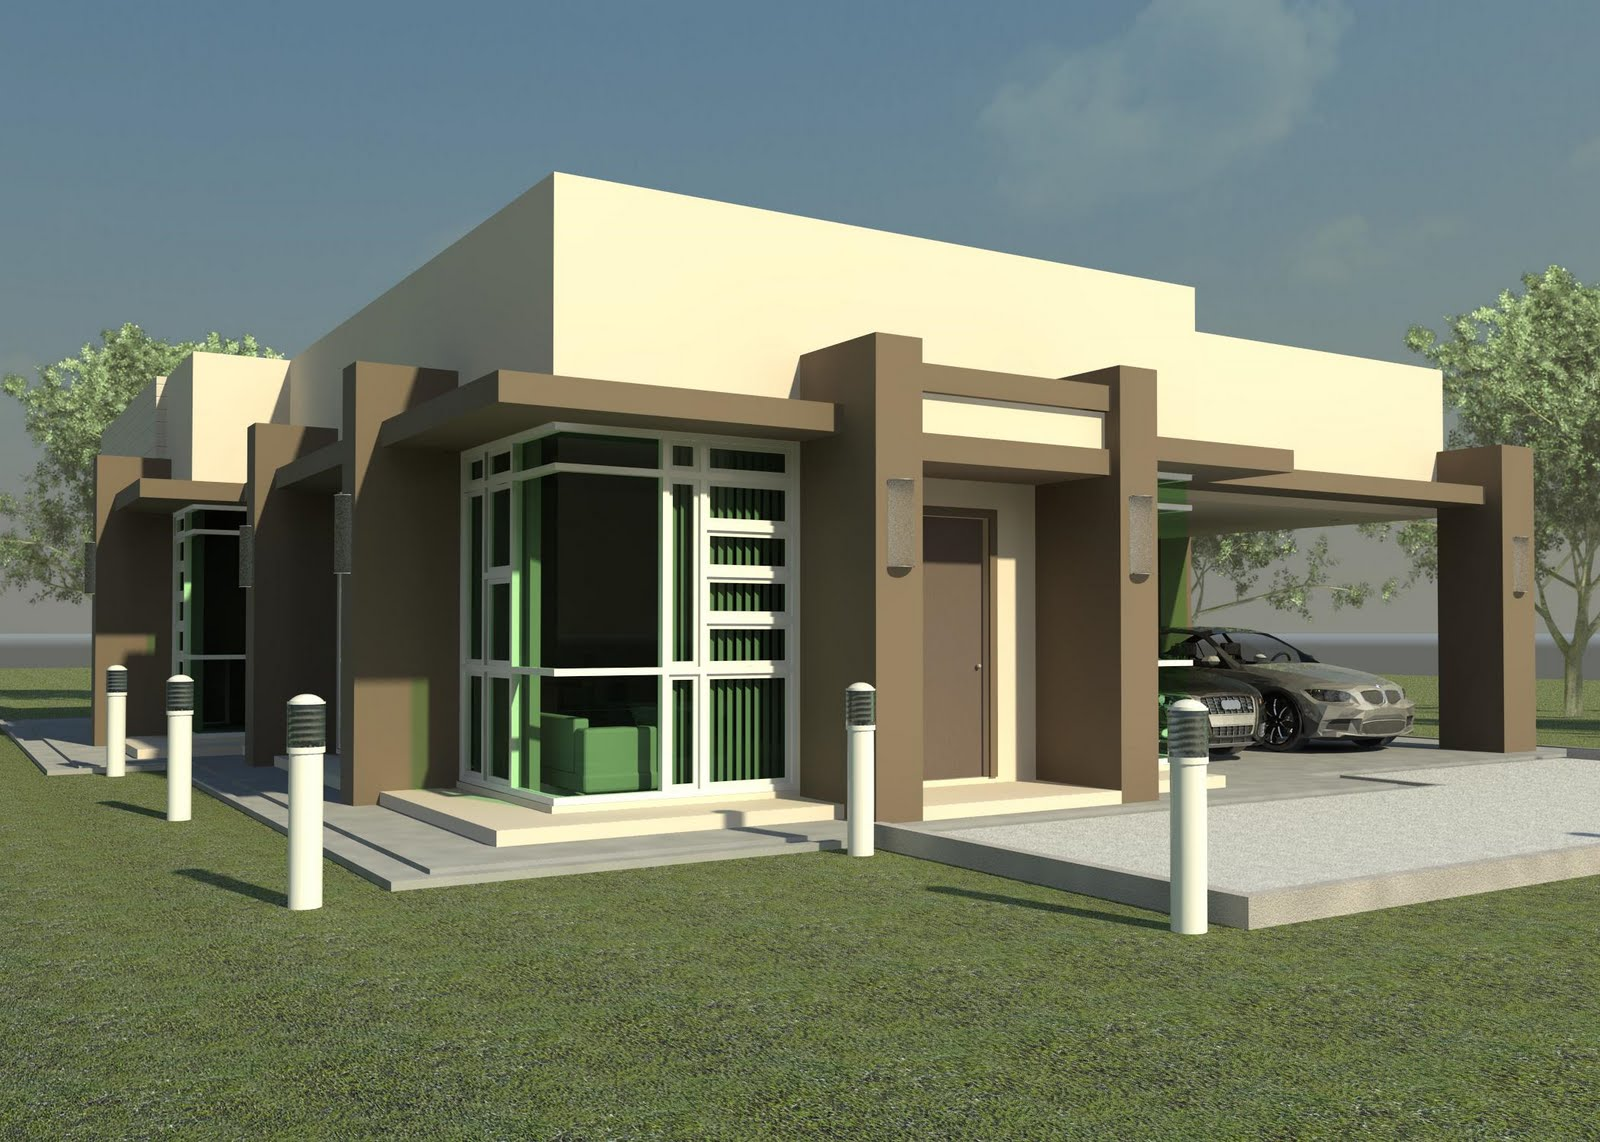 Outstanding Small Modern Home Design Houses 1600 x 1142 · 259 kB · jpeg